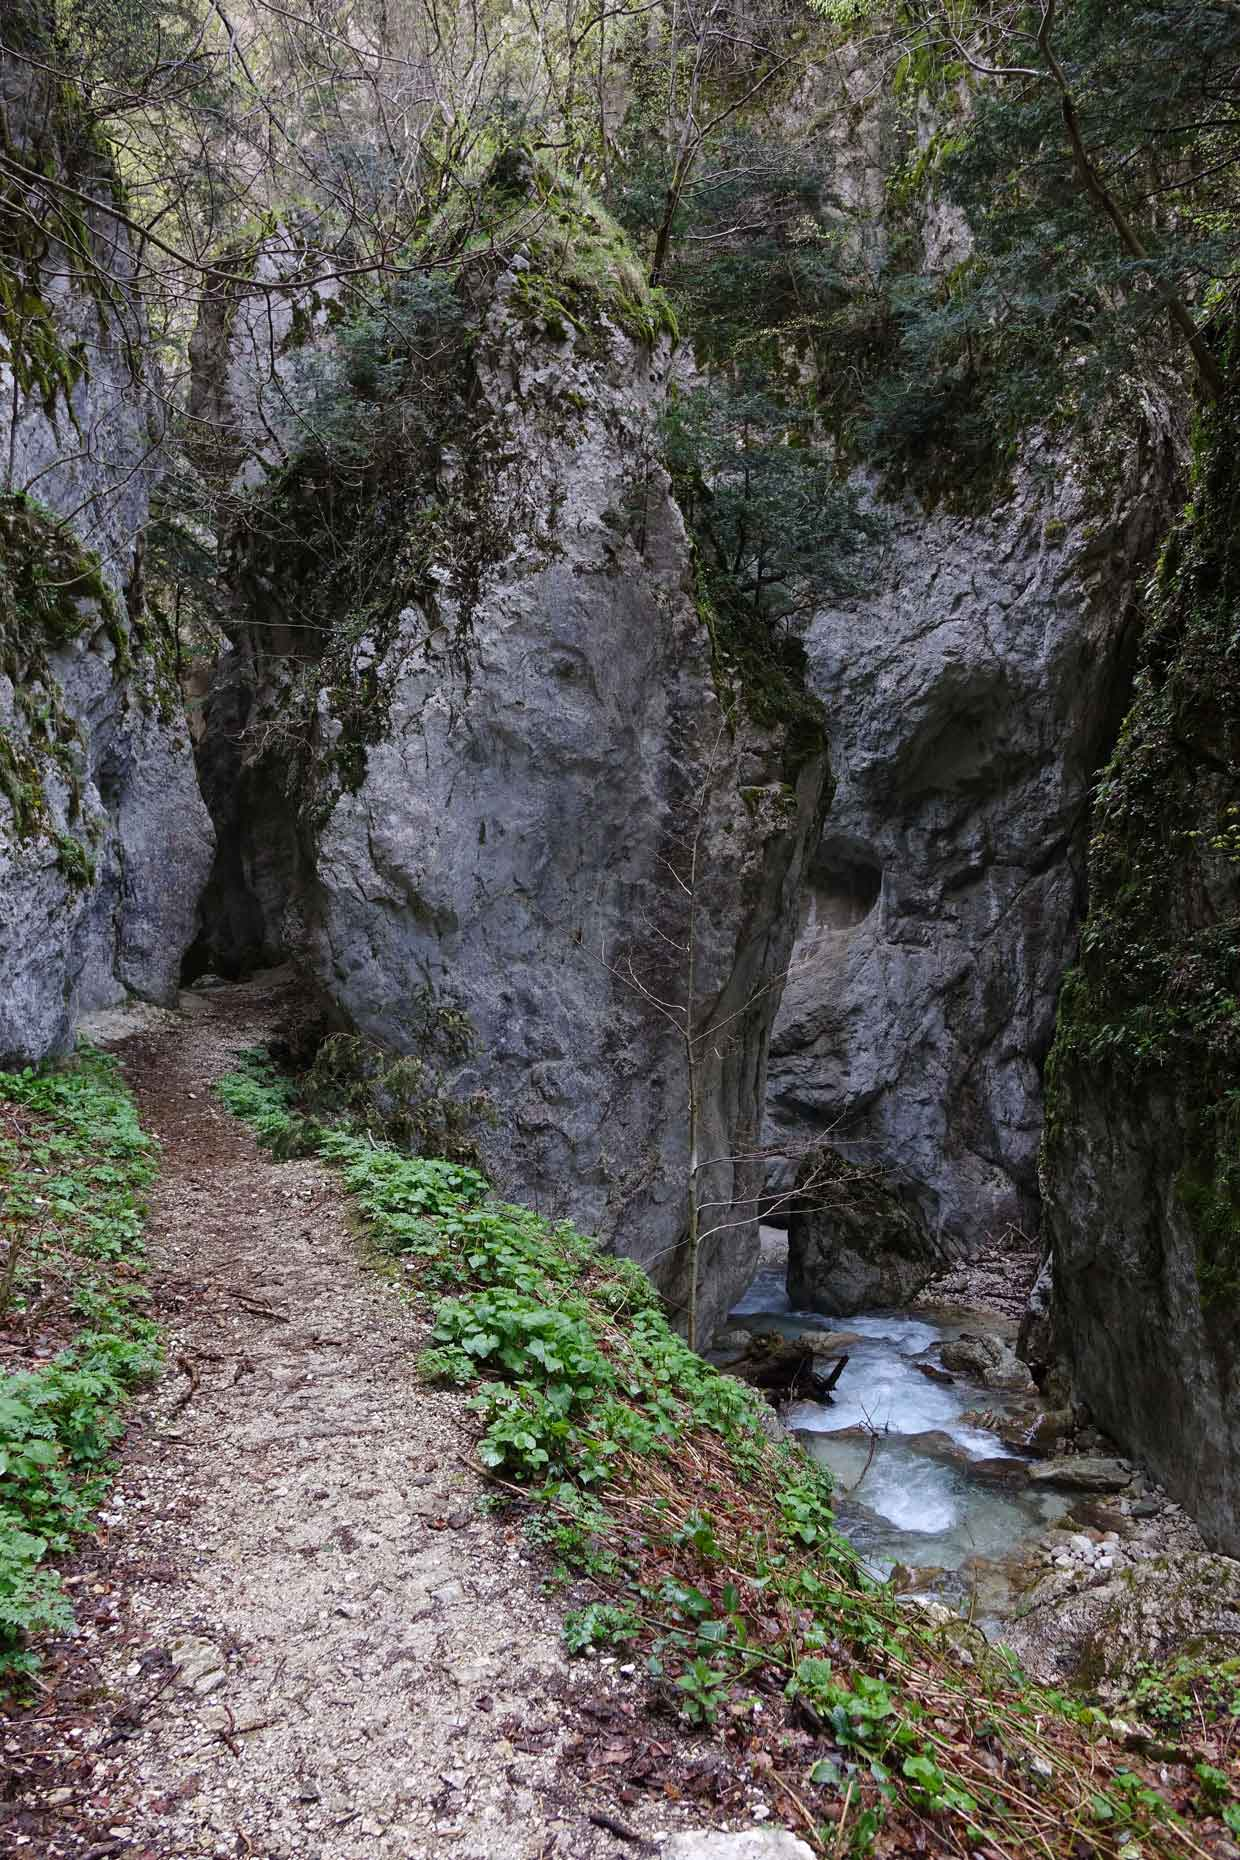 Hike through the Gorge dell'Infernaccio up to the Hermitage of San Leonardo